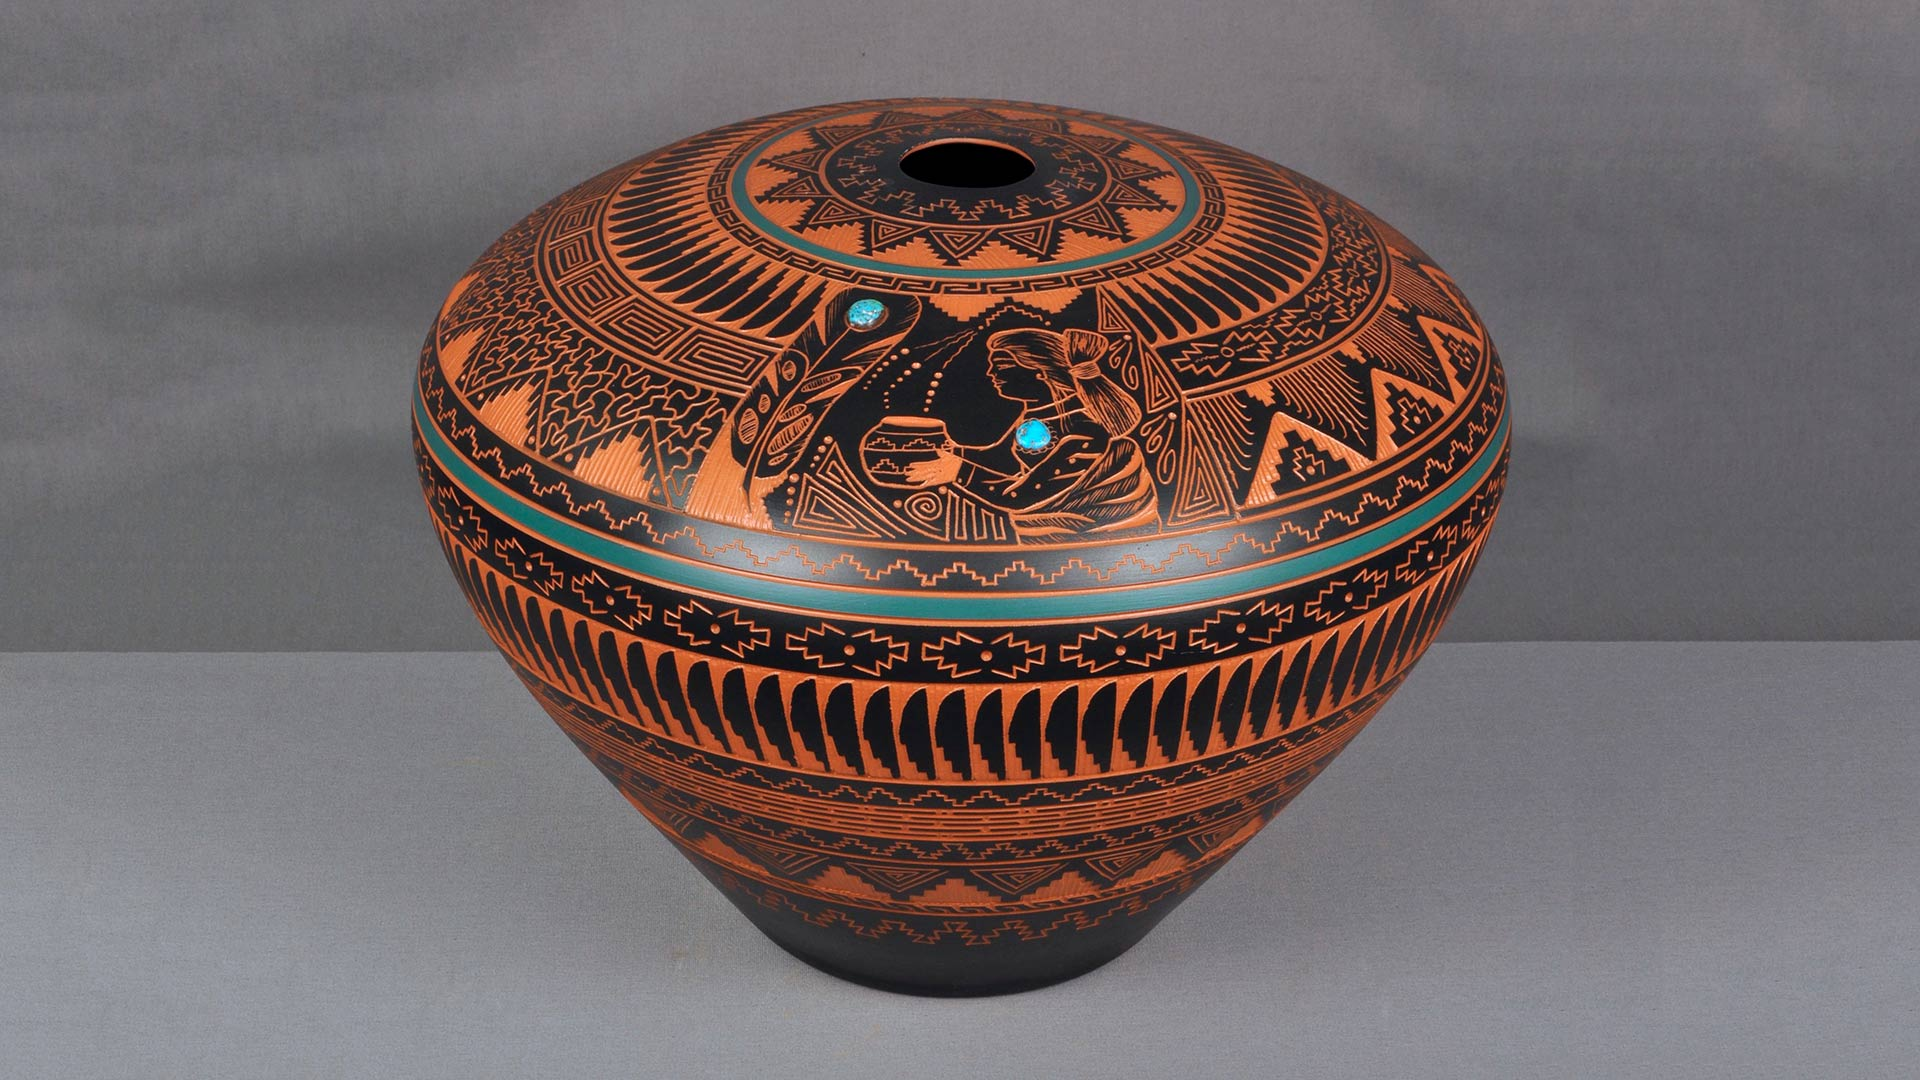 An orange clay vessel decorated with intricate black and turquoise patterns.